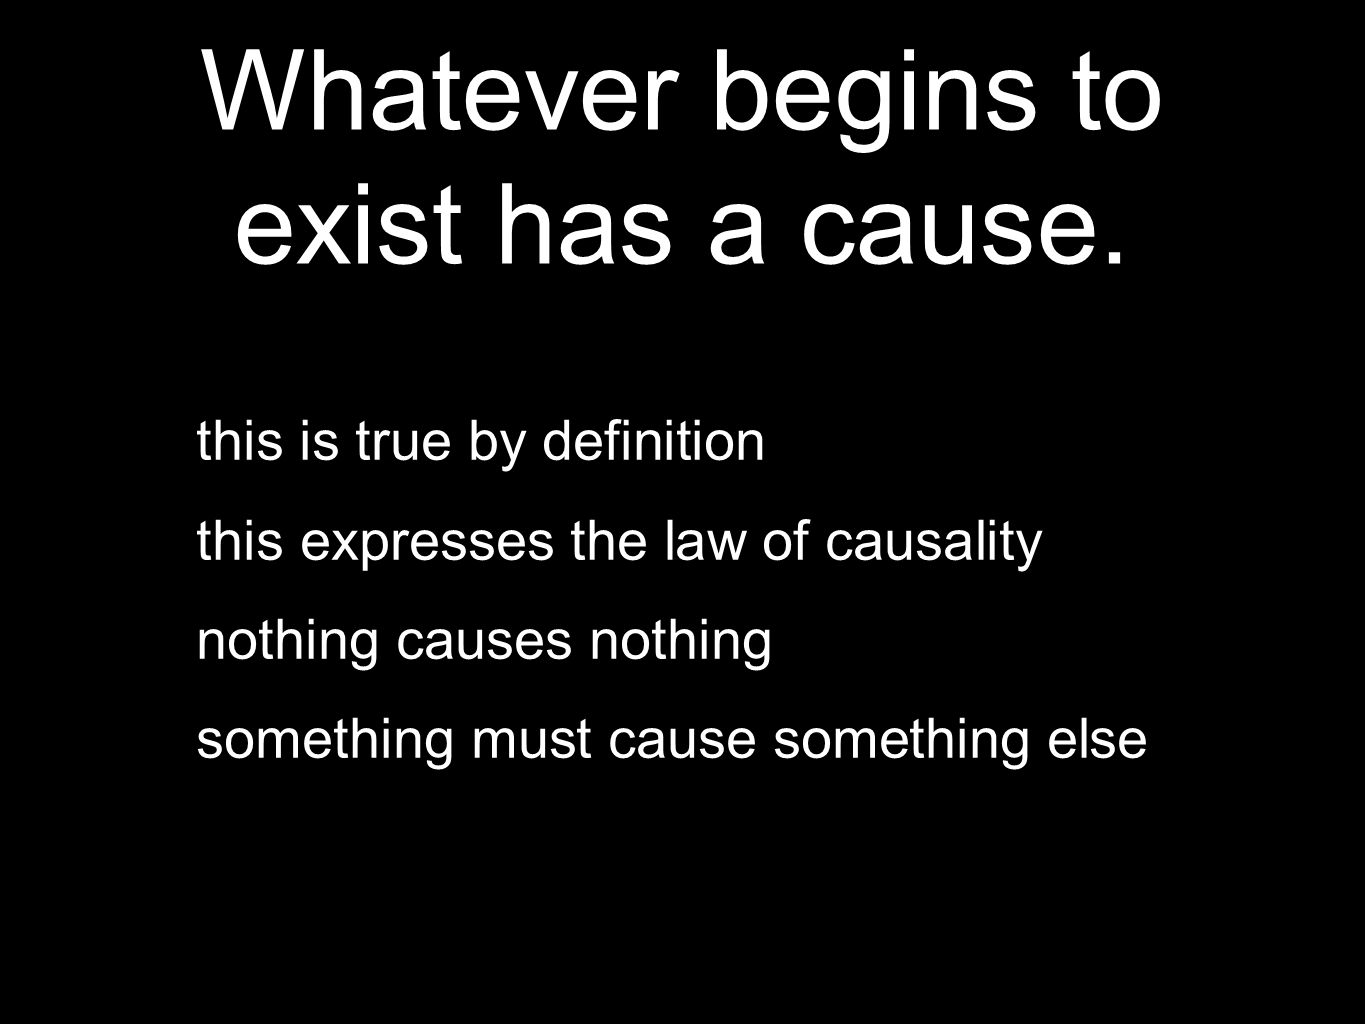 Whatever begins to exist has a cause.